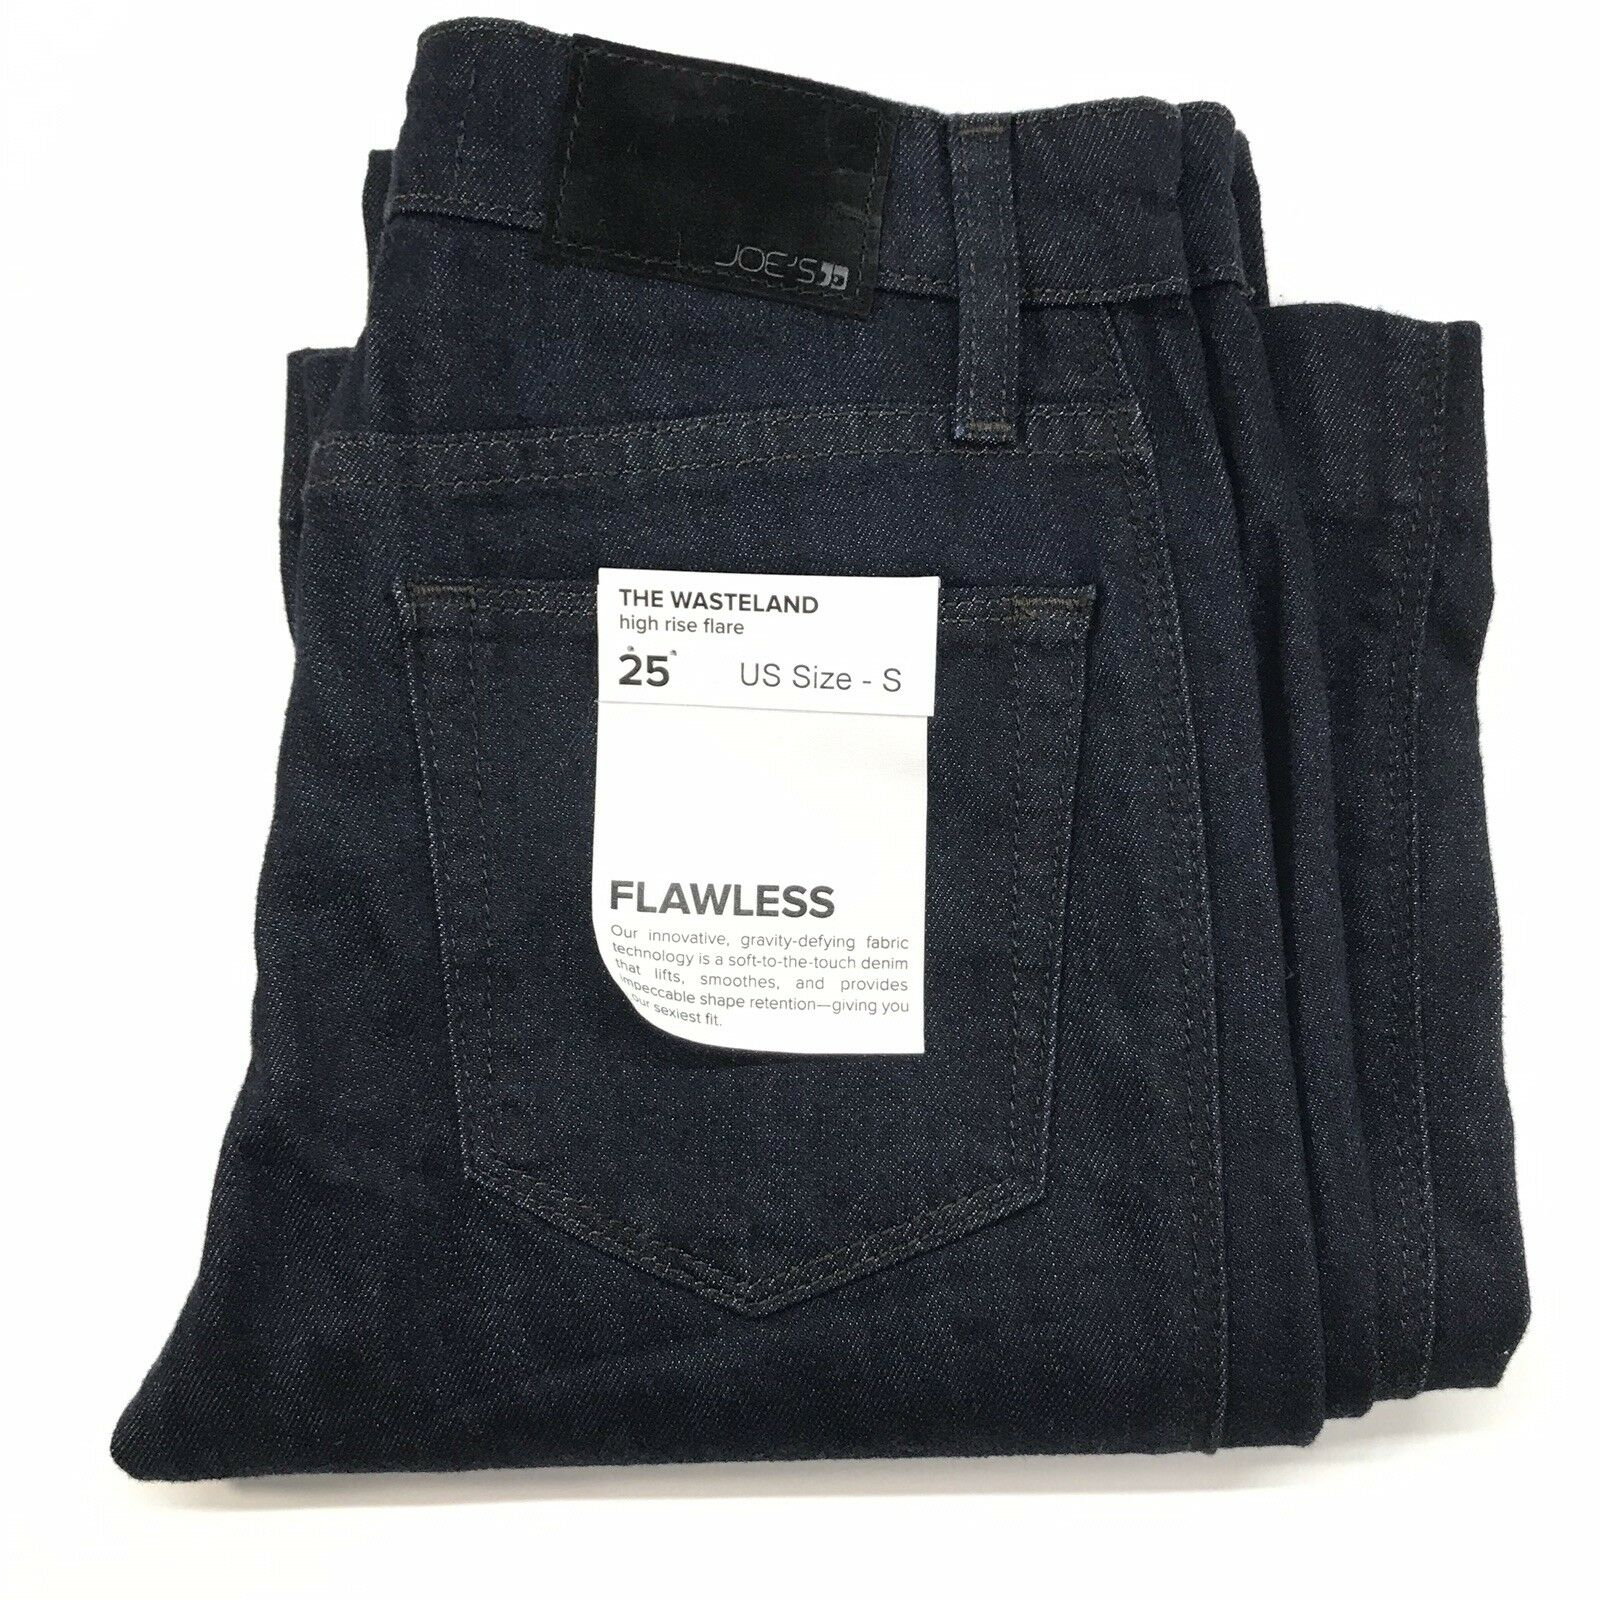 Joe's Jeans Women's Flawless The Wasteland High Rise Flare Size 25x33 NWT  158